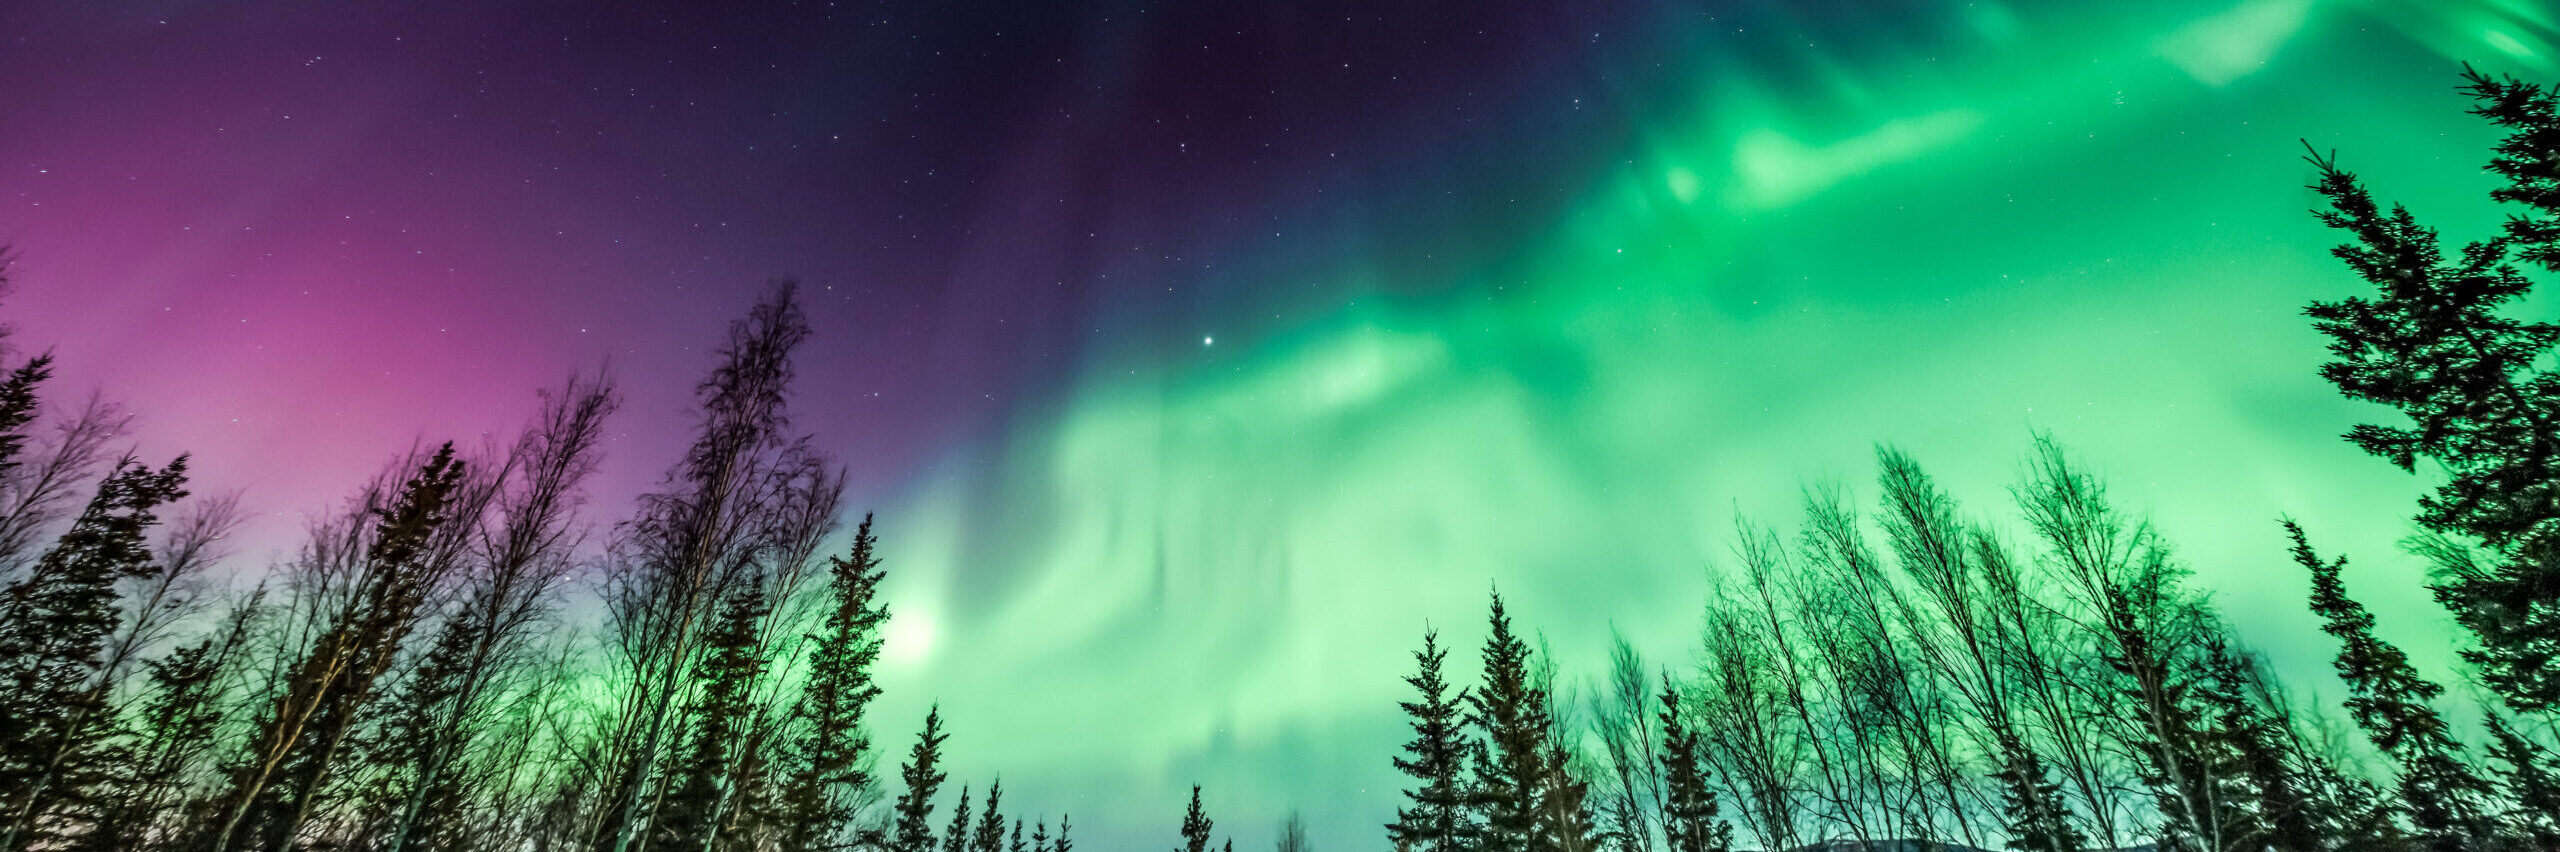 Purple and green Northern Lights in wave pattern over trees [shutterstock]